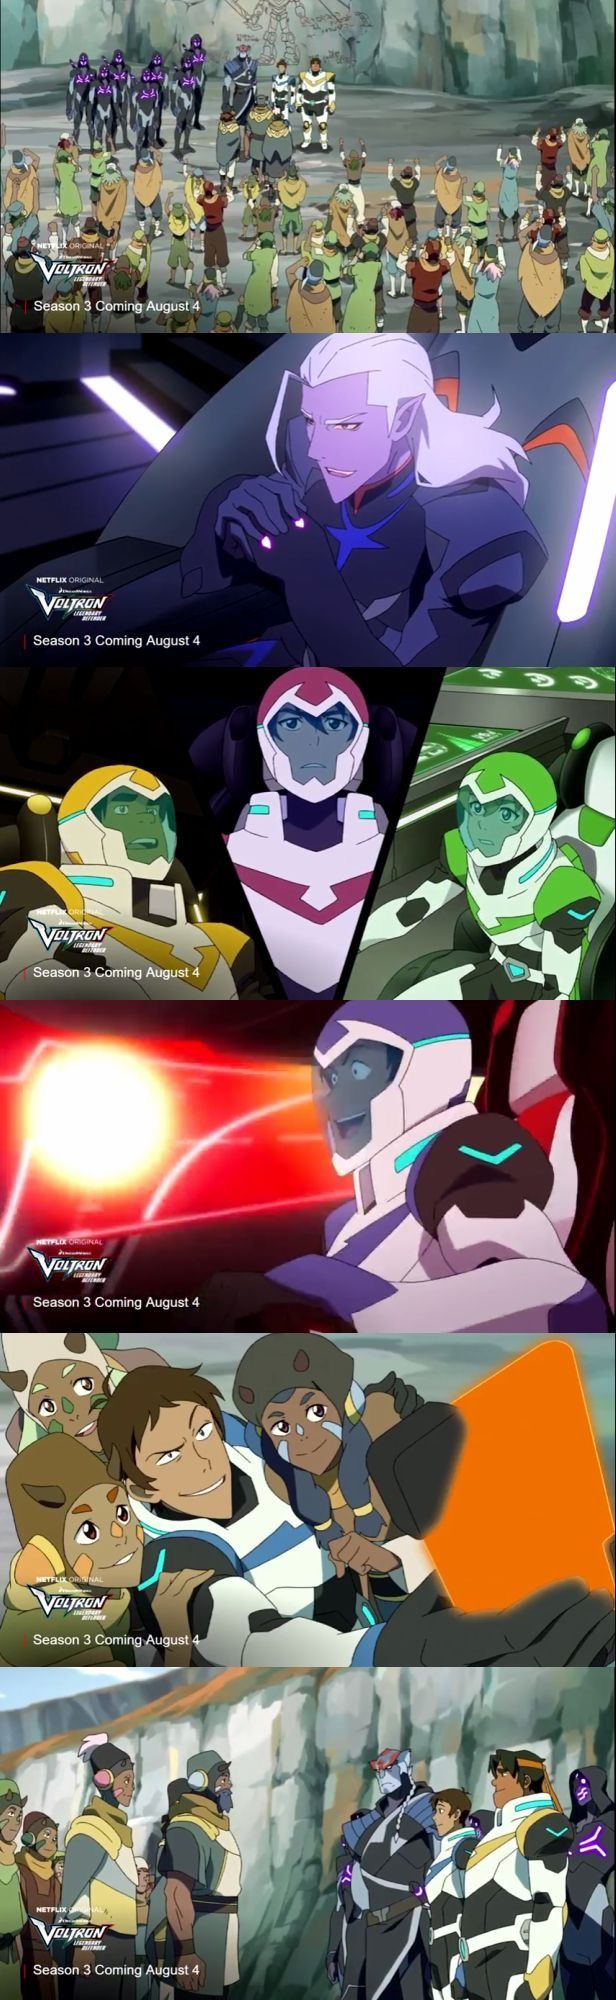 SEASON THREE TEASER TRAILER SO HERE IS A RUNDOWN LANCE PILOTS BLUE AND RED KEITH IN BLACK AND SHIRO POOF ALLURA AND CORAN NOT SHOWN MORE LANCE DEVELOPMENT LOTOR HAS POINTY CHIN AND HOT VOICE SIXTH LION(next pic posted) PIDGE&KEITH SHOWN FOR LIKE .01 SEC